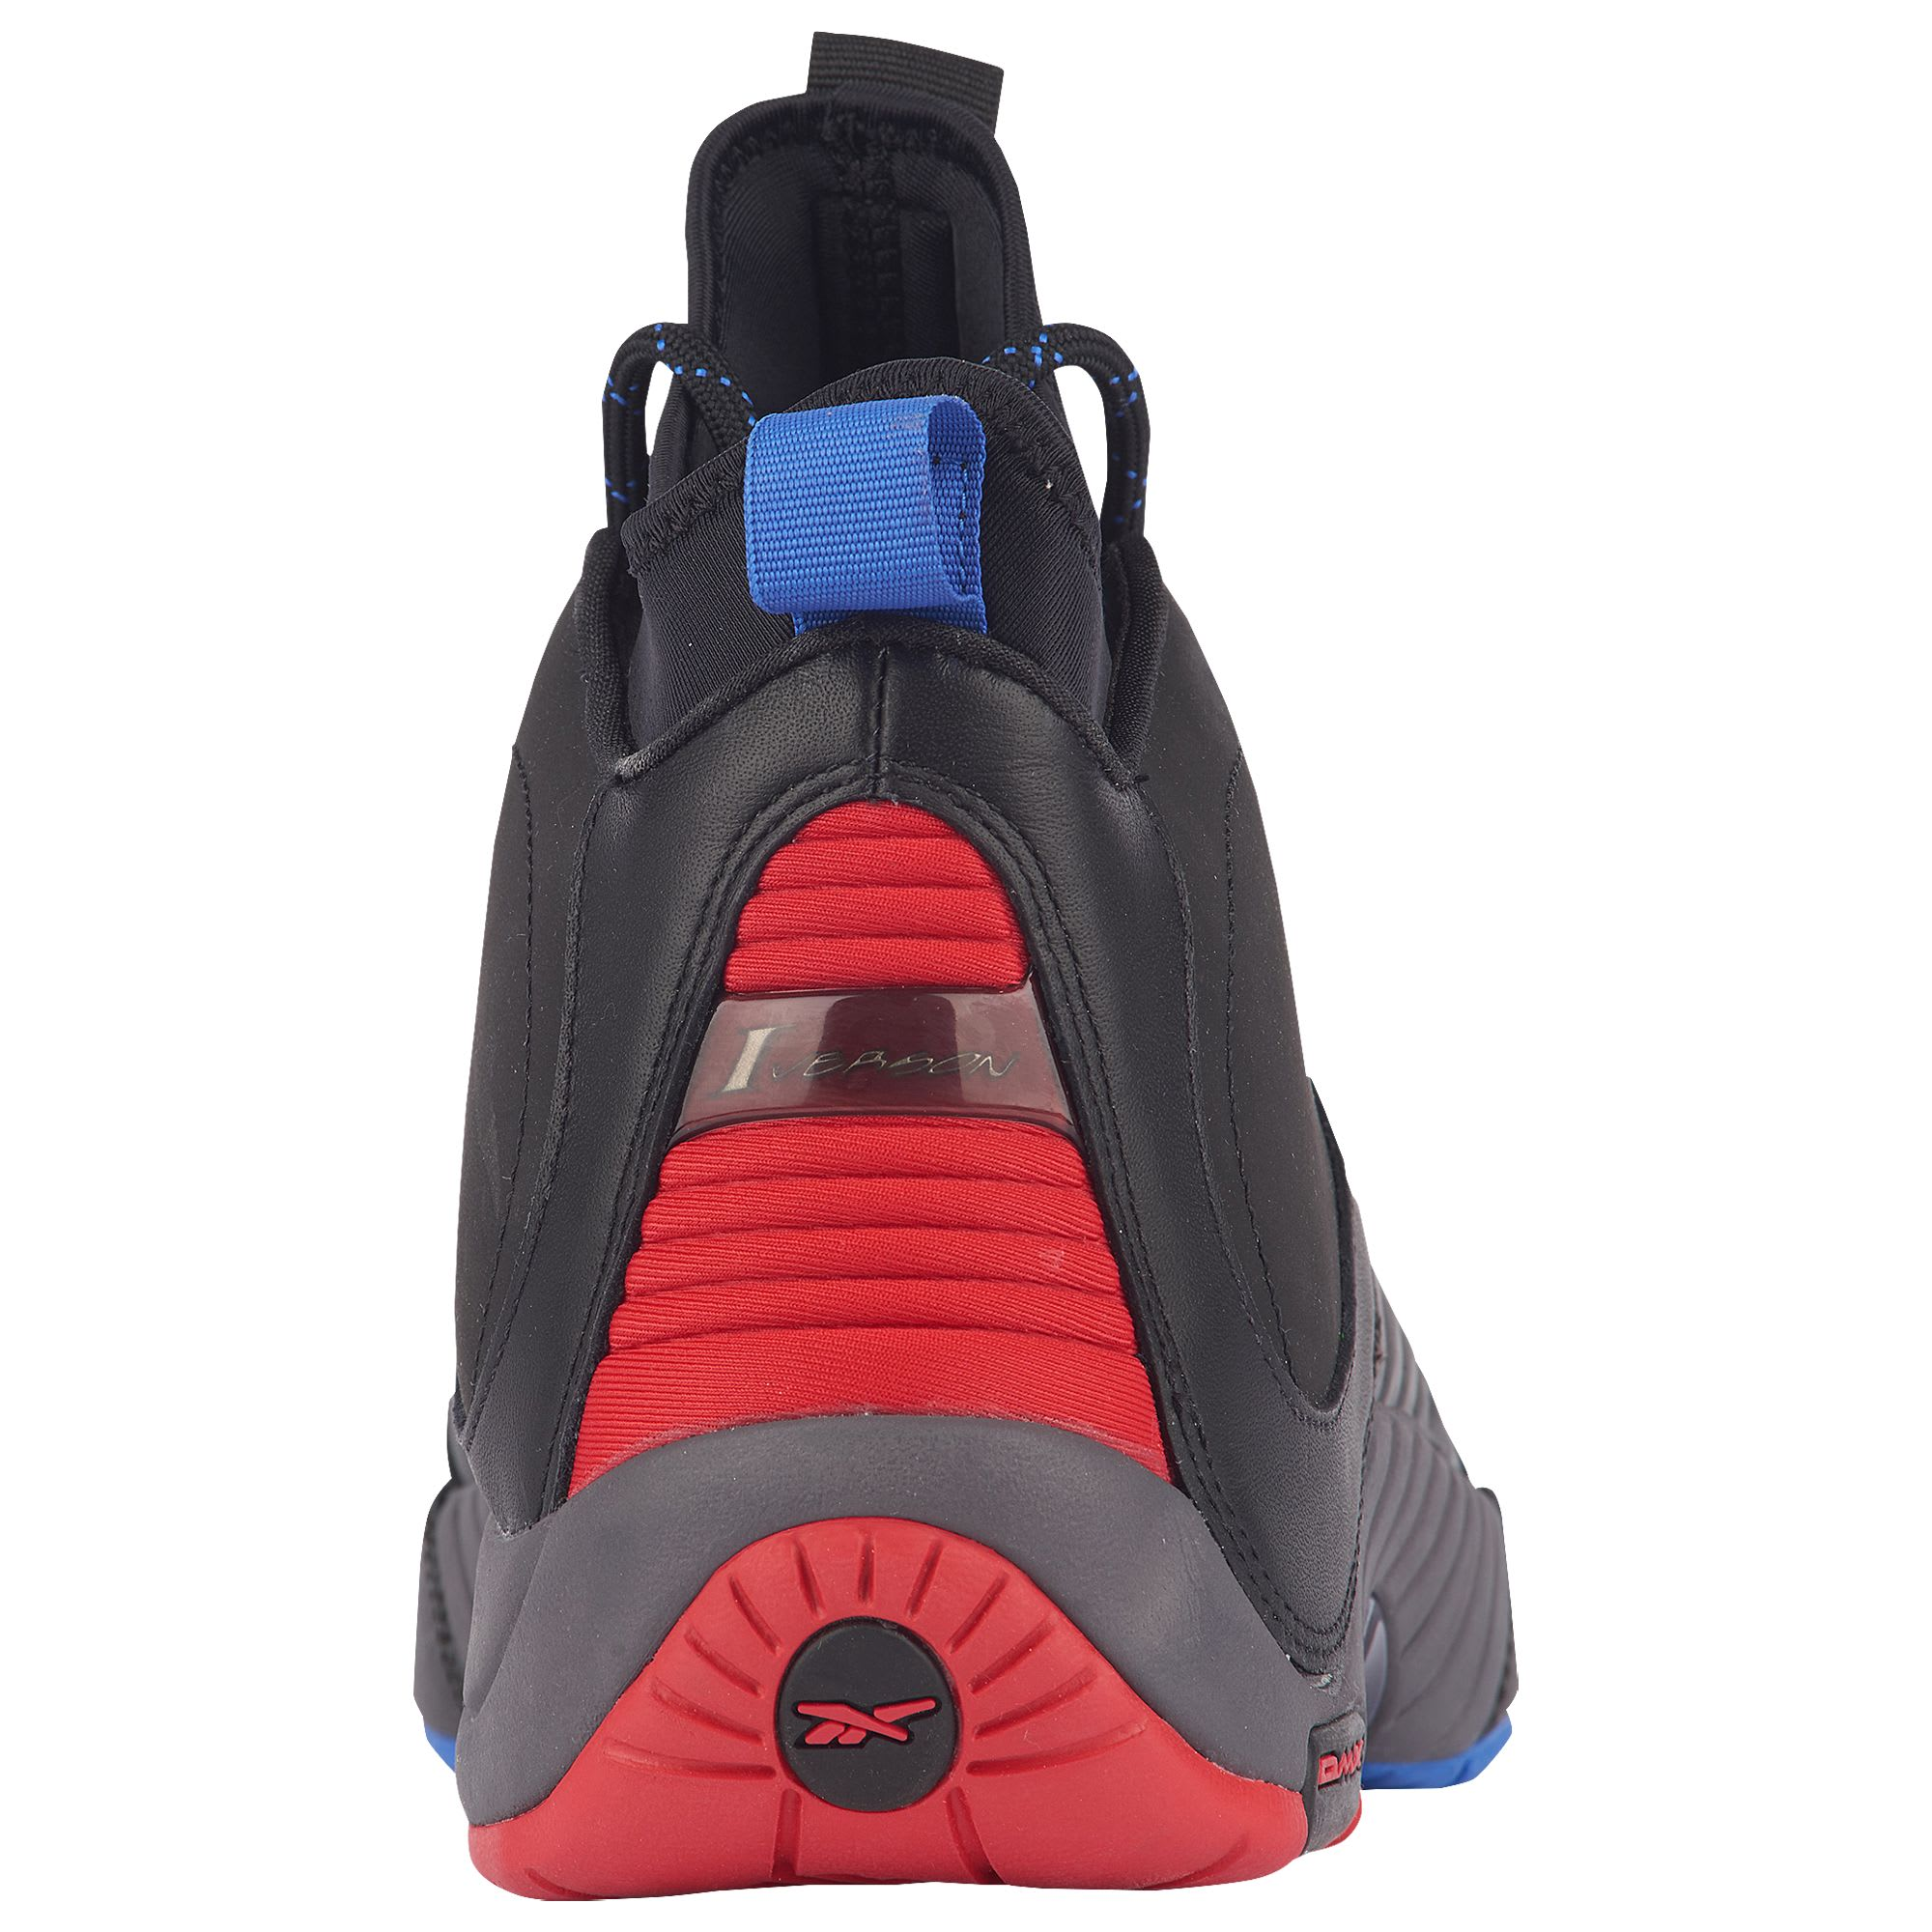 Image via Foot Locker Reebok Answer 4.5 Black Ash Grey Primal Red Vital  Blue Release Date CN5841 Heel d8aff23ec1234